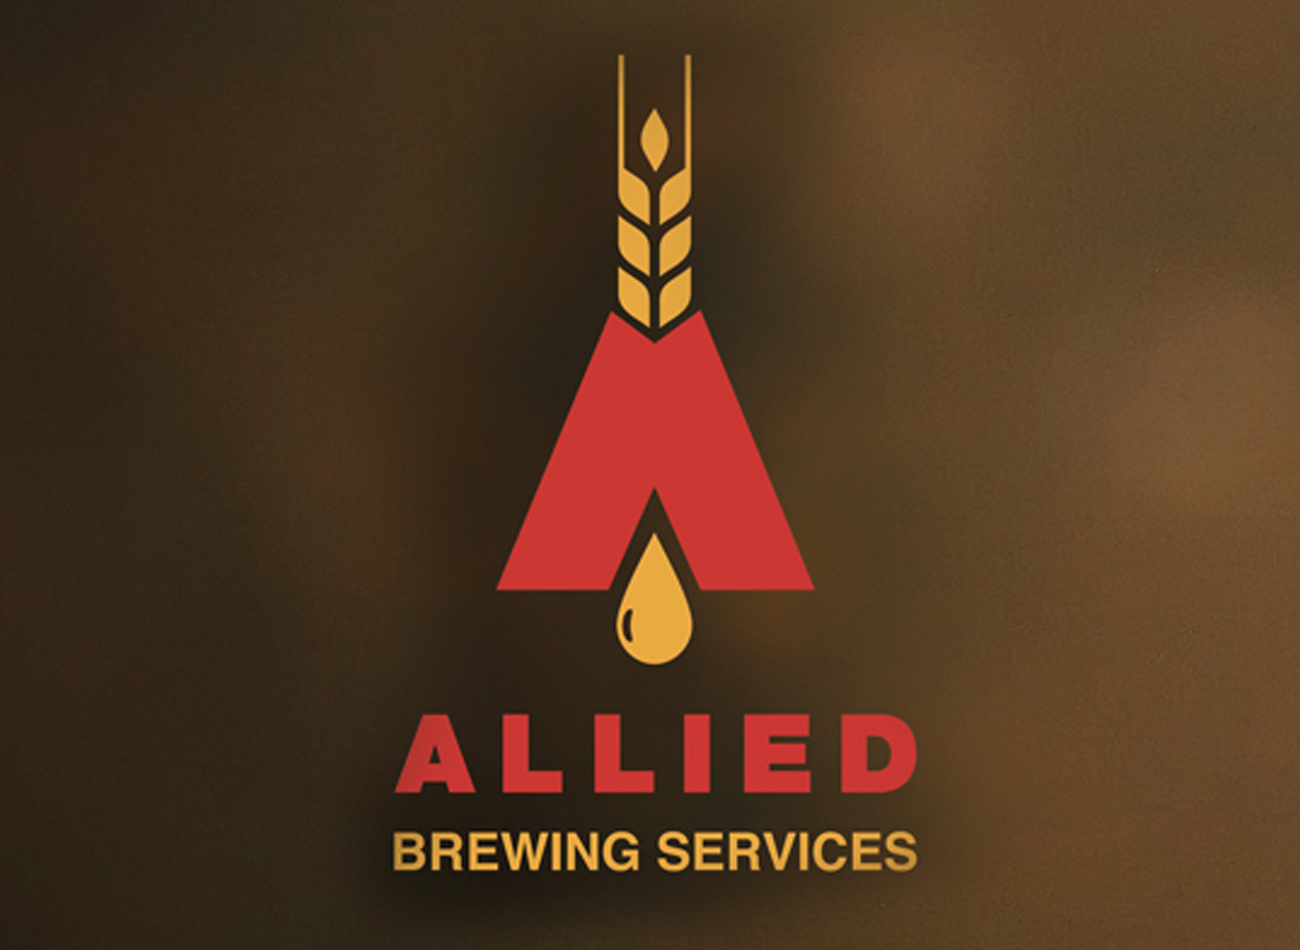 allied-brewing-graphic-Corporate-Identity-Agent-Orange-Design-Thumbnail.jpg